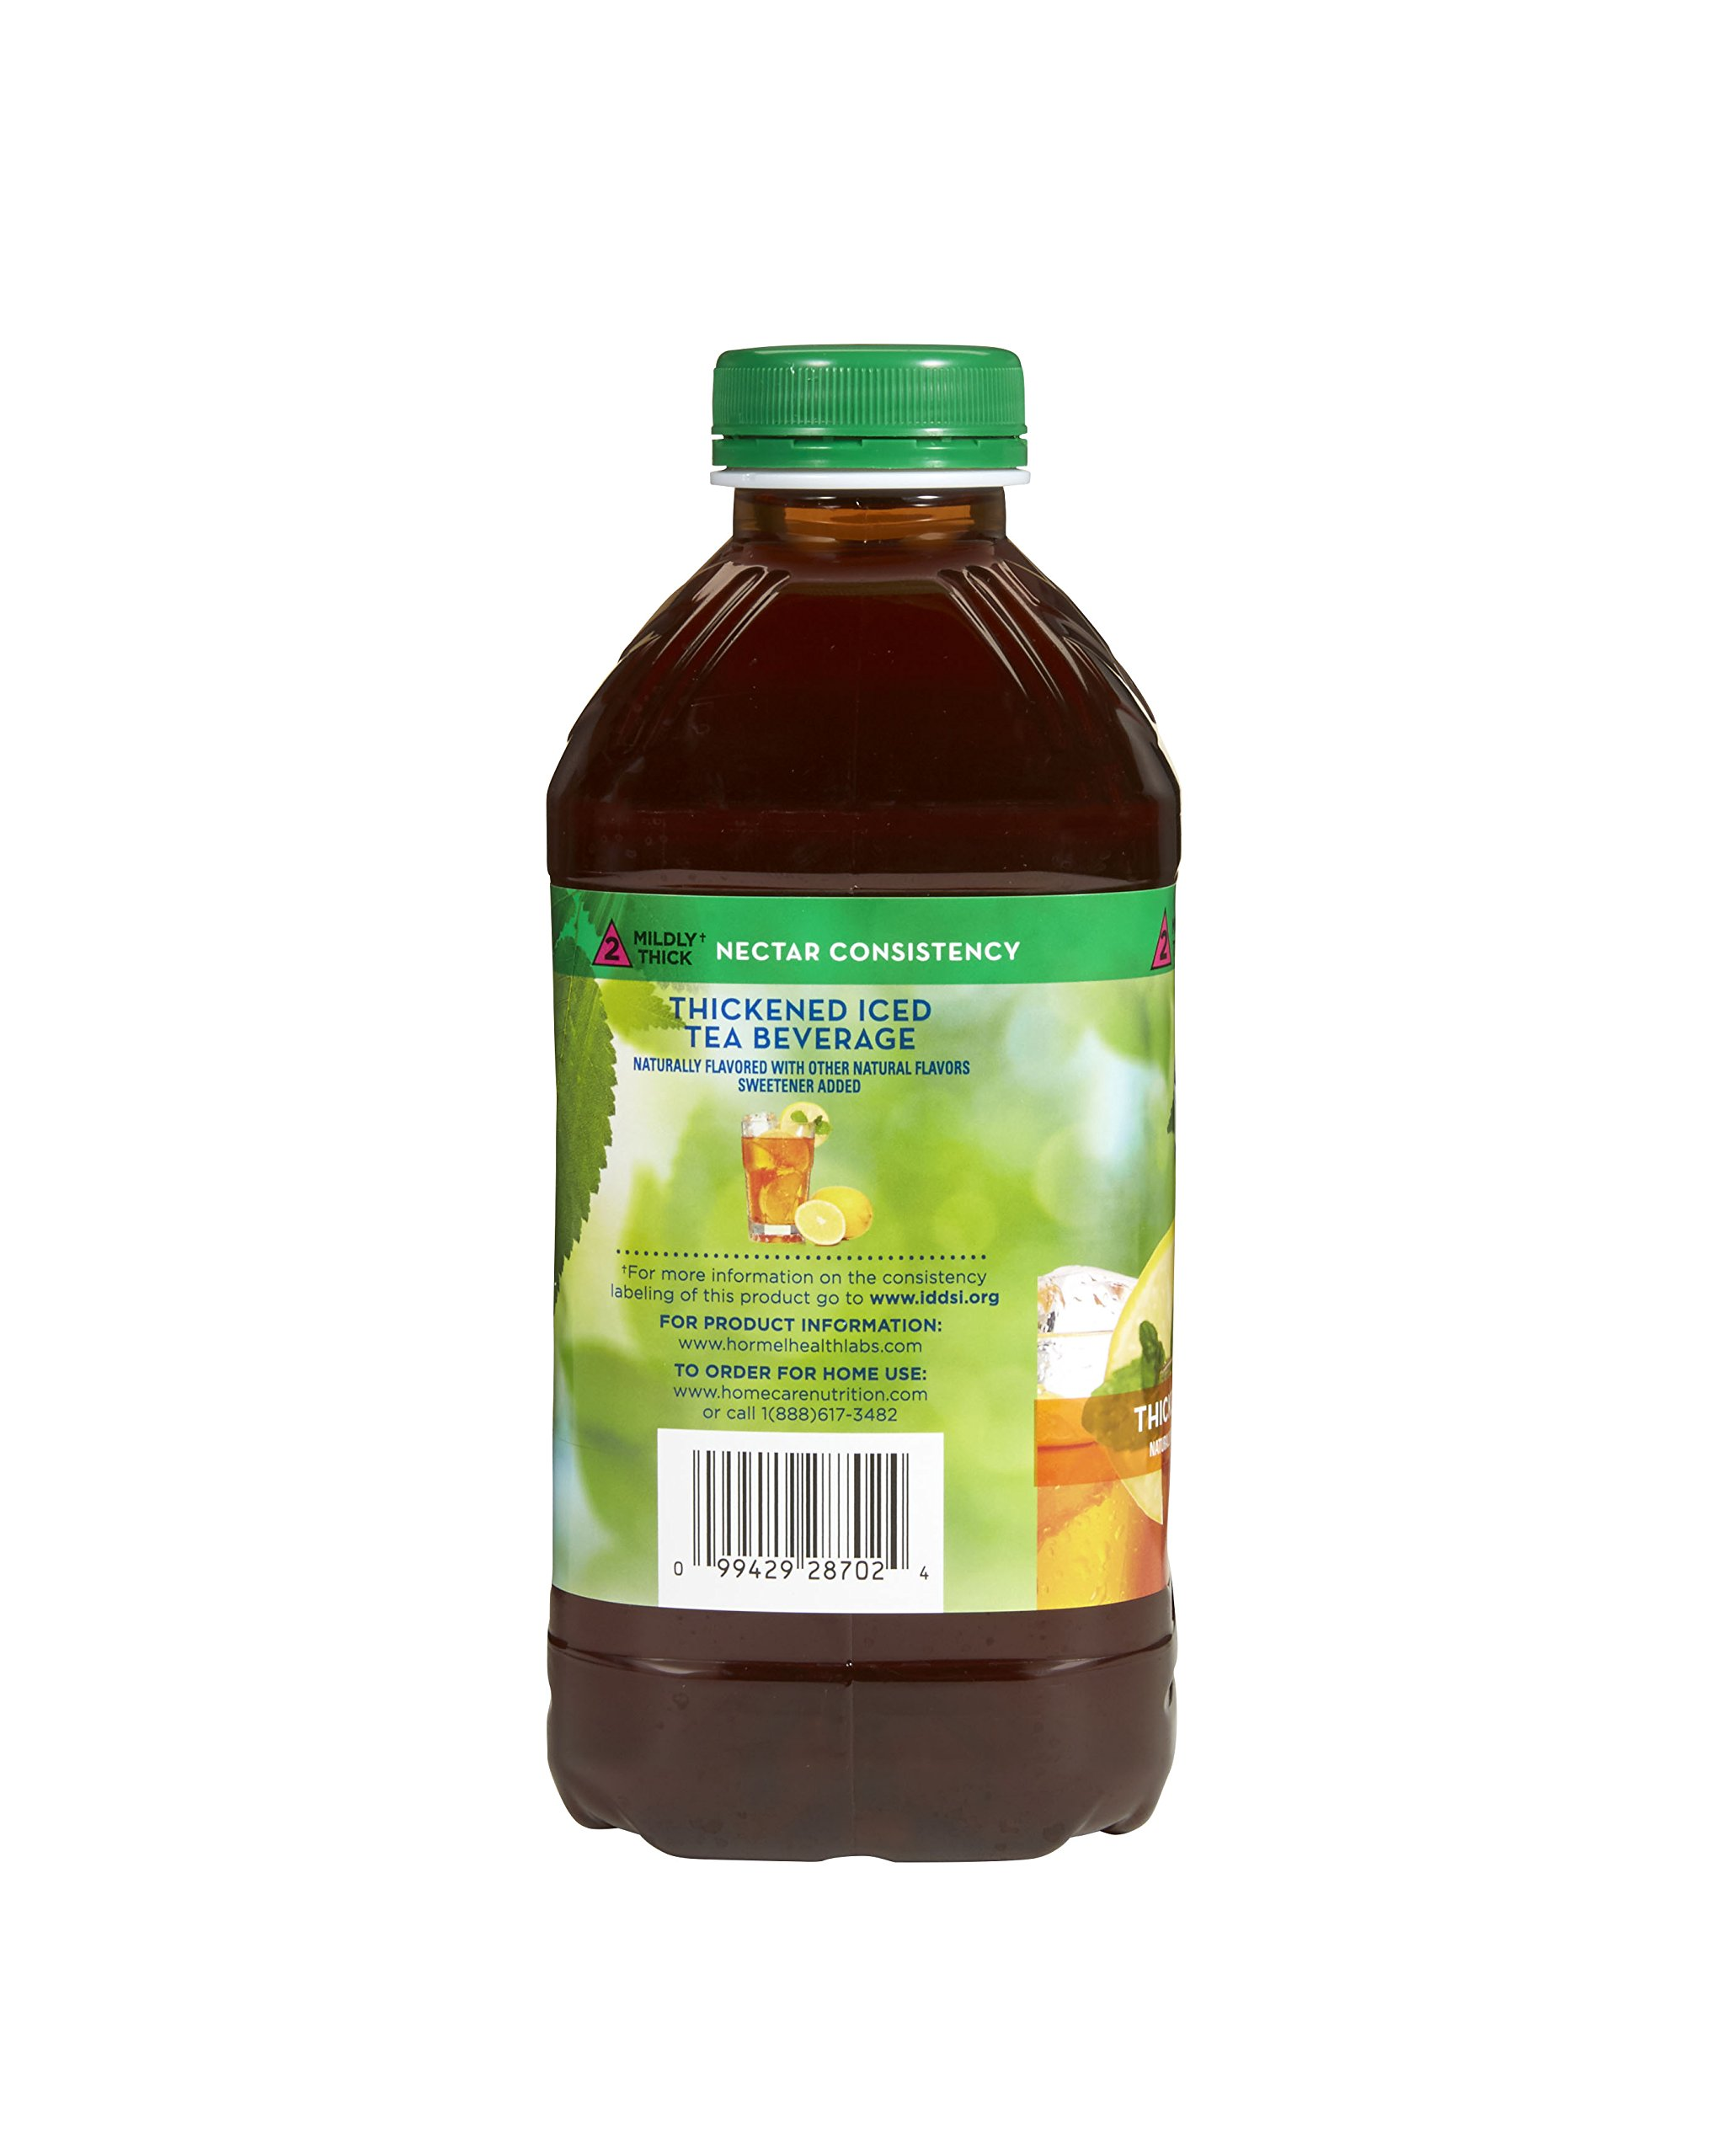 Thick & Easy Clear Thickened Iced Tea, Nectar Consistency, 46 Ounce (Pack of 6)